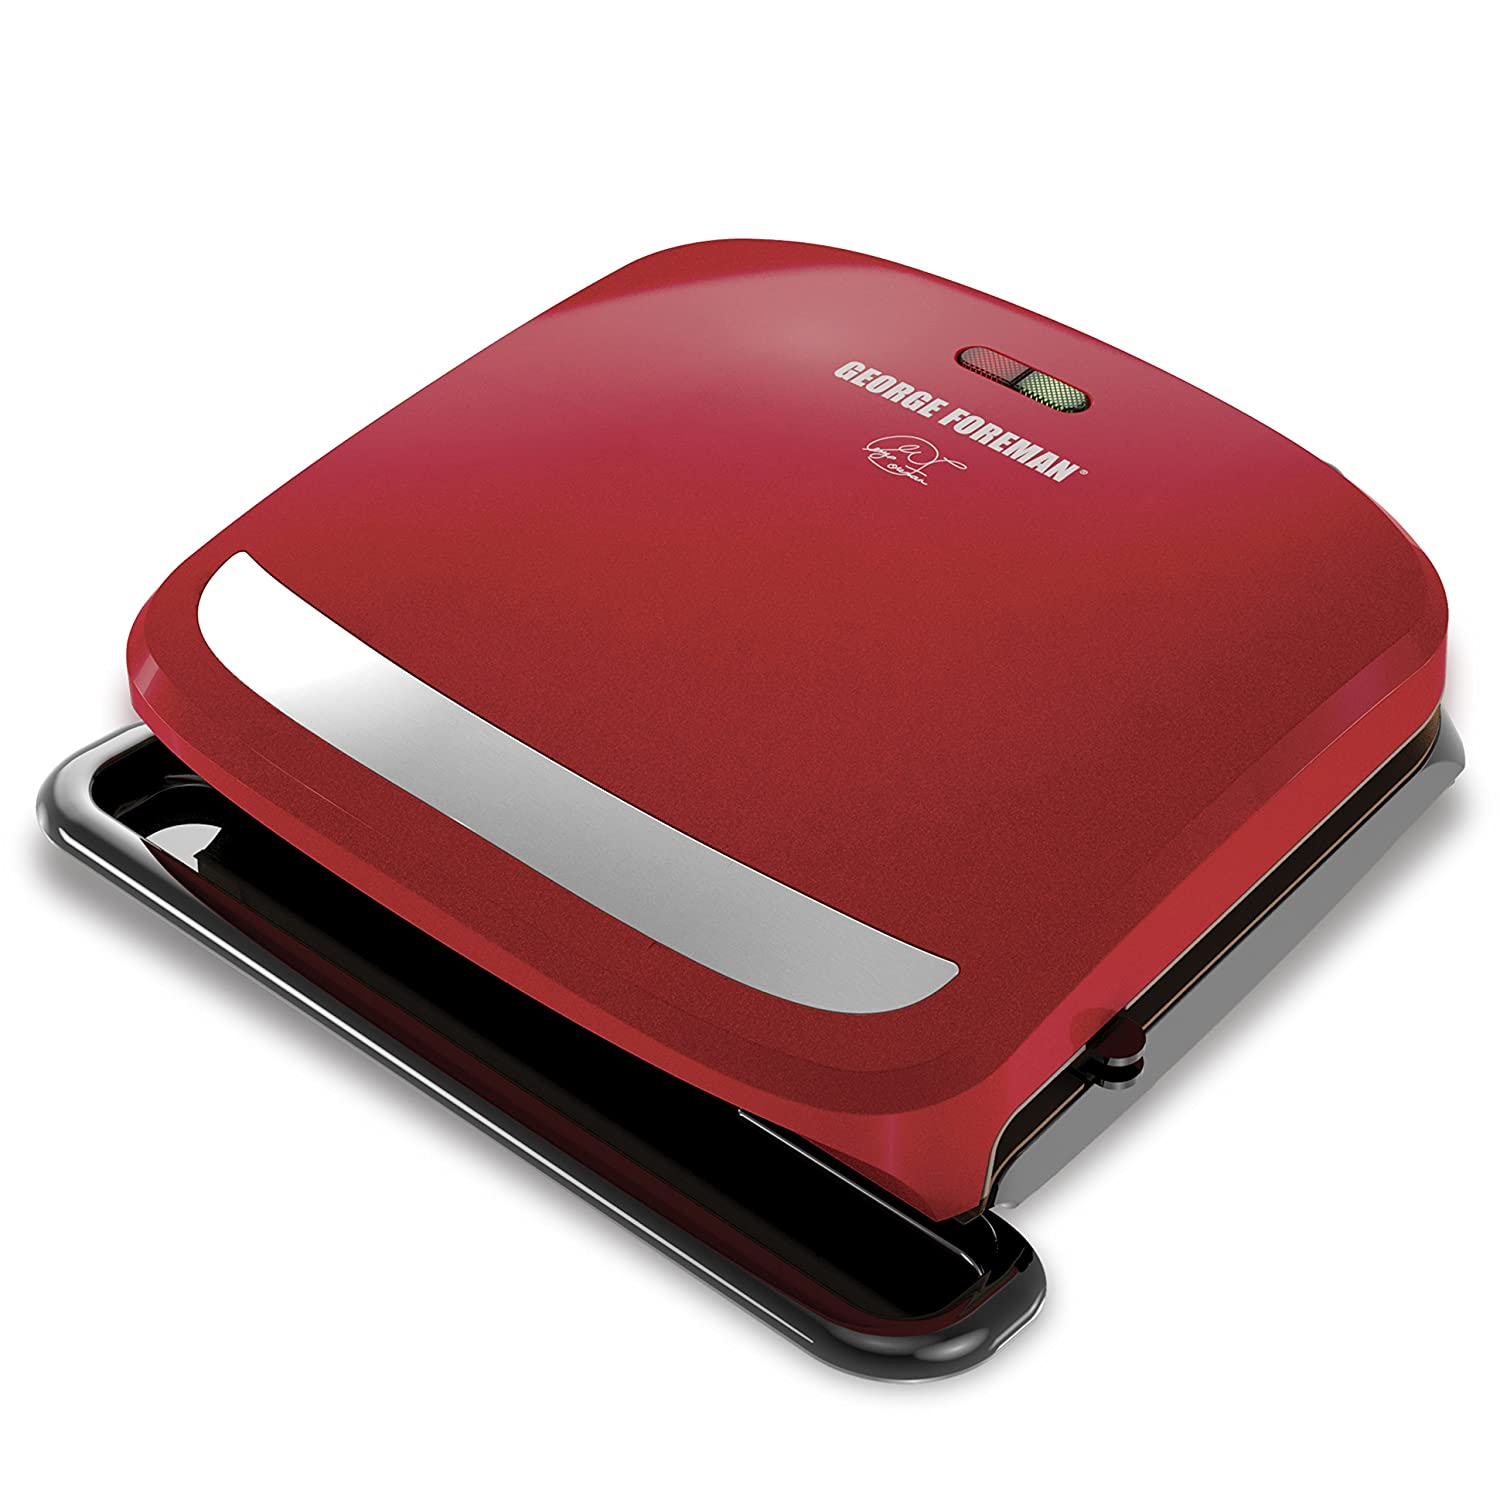 George Foreman 4-Serving Removable Plate Grill and Panini Press, Red, GRP360R